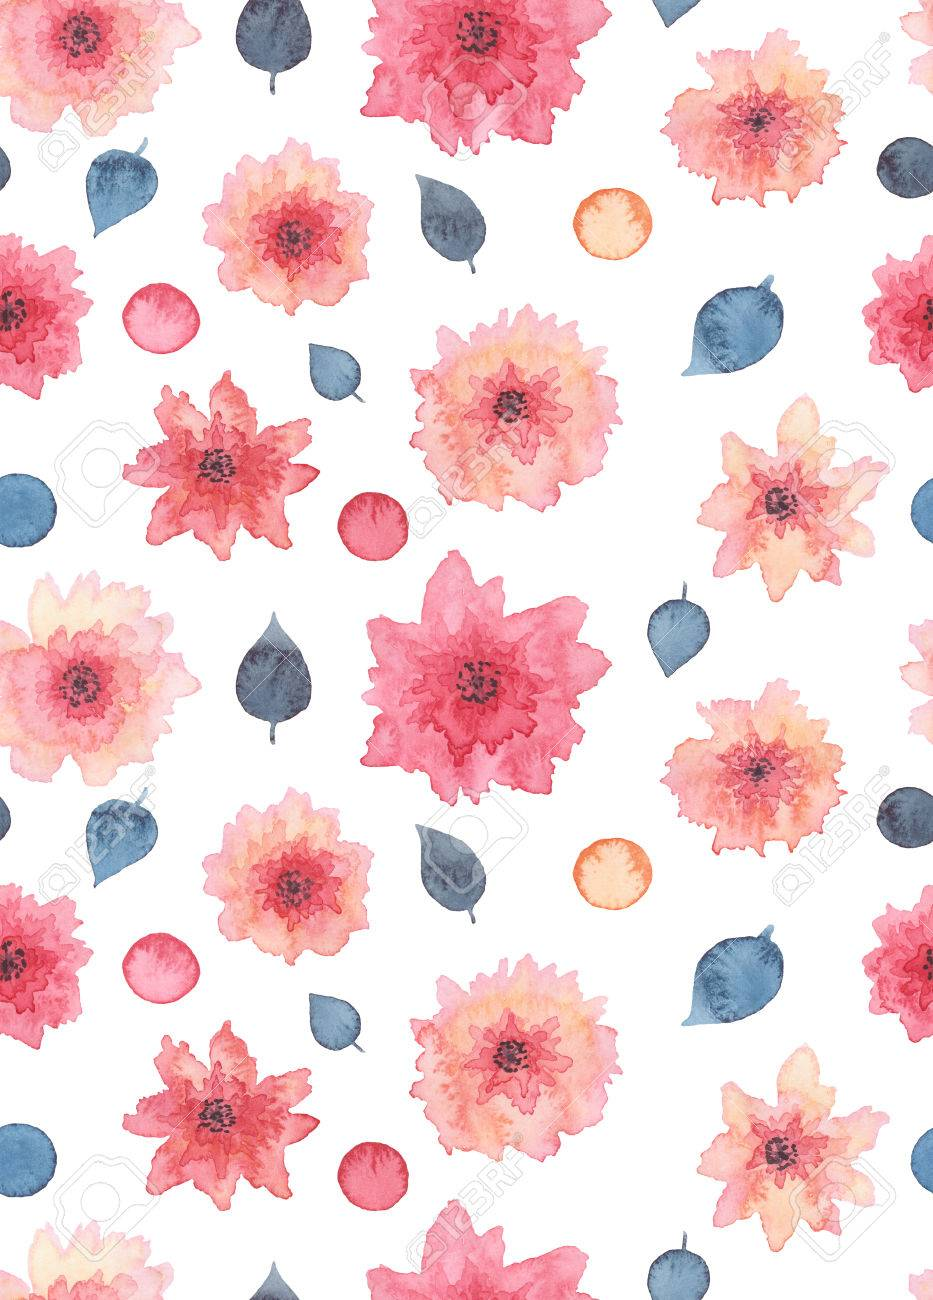 Watercolor Delicate Pink Flowers Spots And Deep Blue Leaves Stock